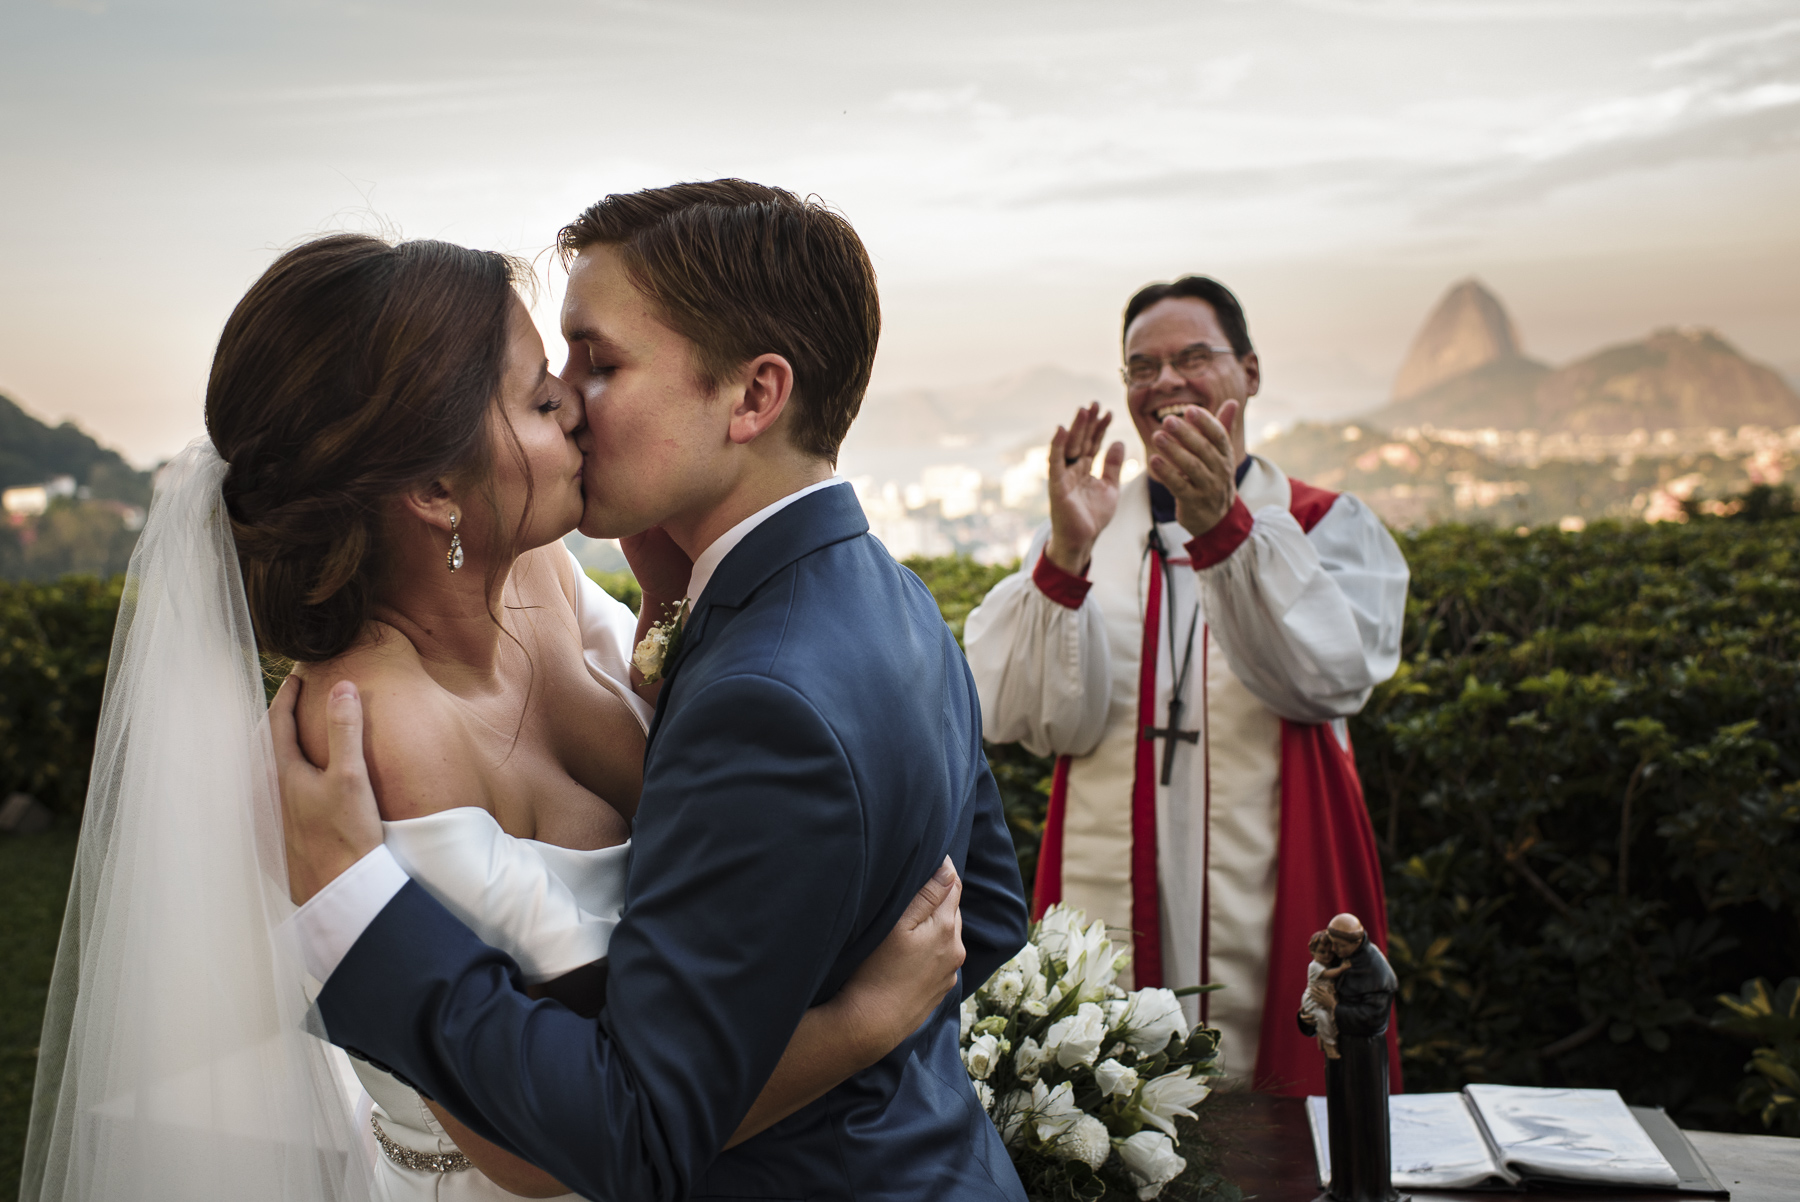 Rio de Janeiro Wedding Image - Brazil, Casa de Santa Teresa | The wedding officiant claps with joy